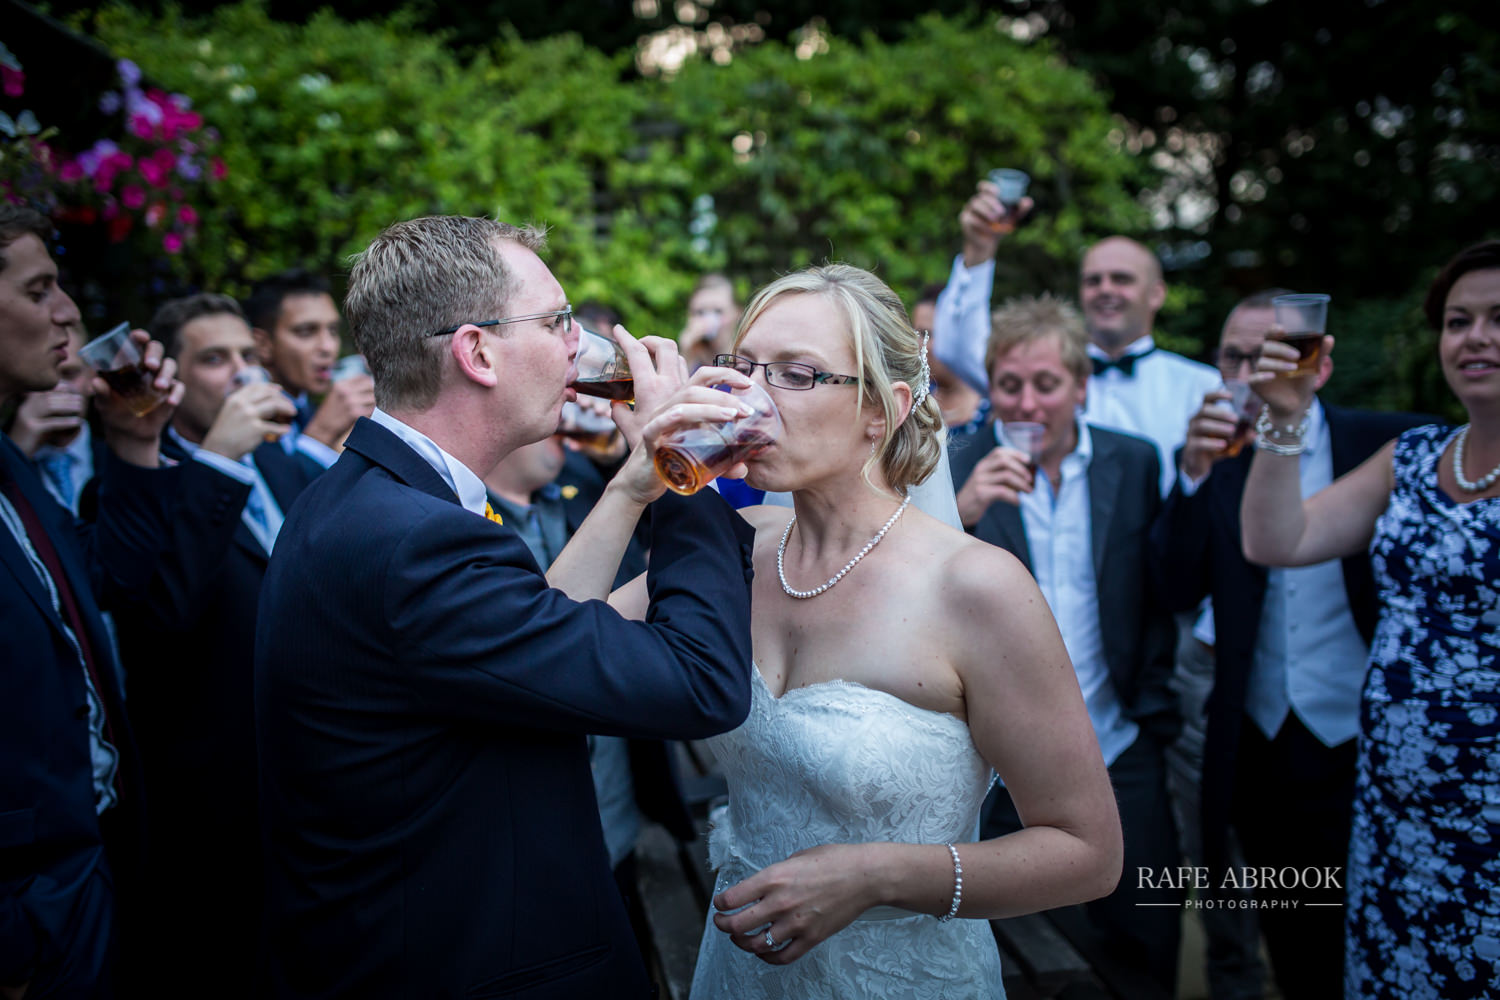 minstrel court wedding royston cambridge hertfordshire wedding photographer-1418.jpg